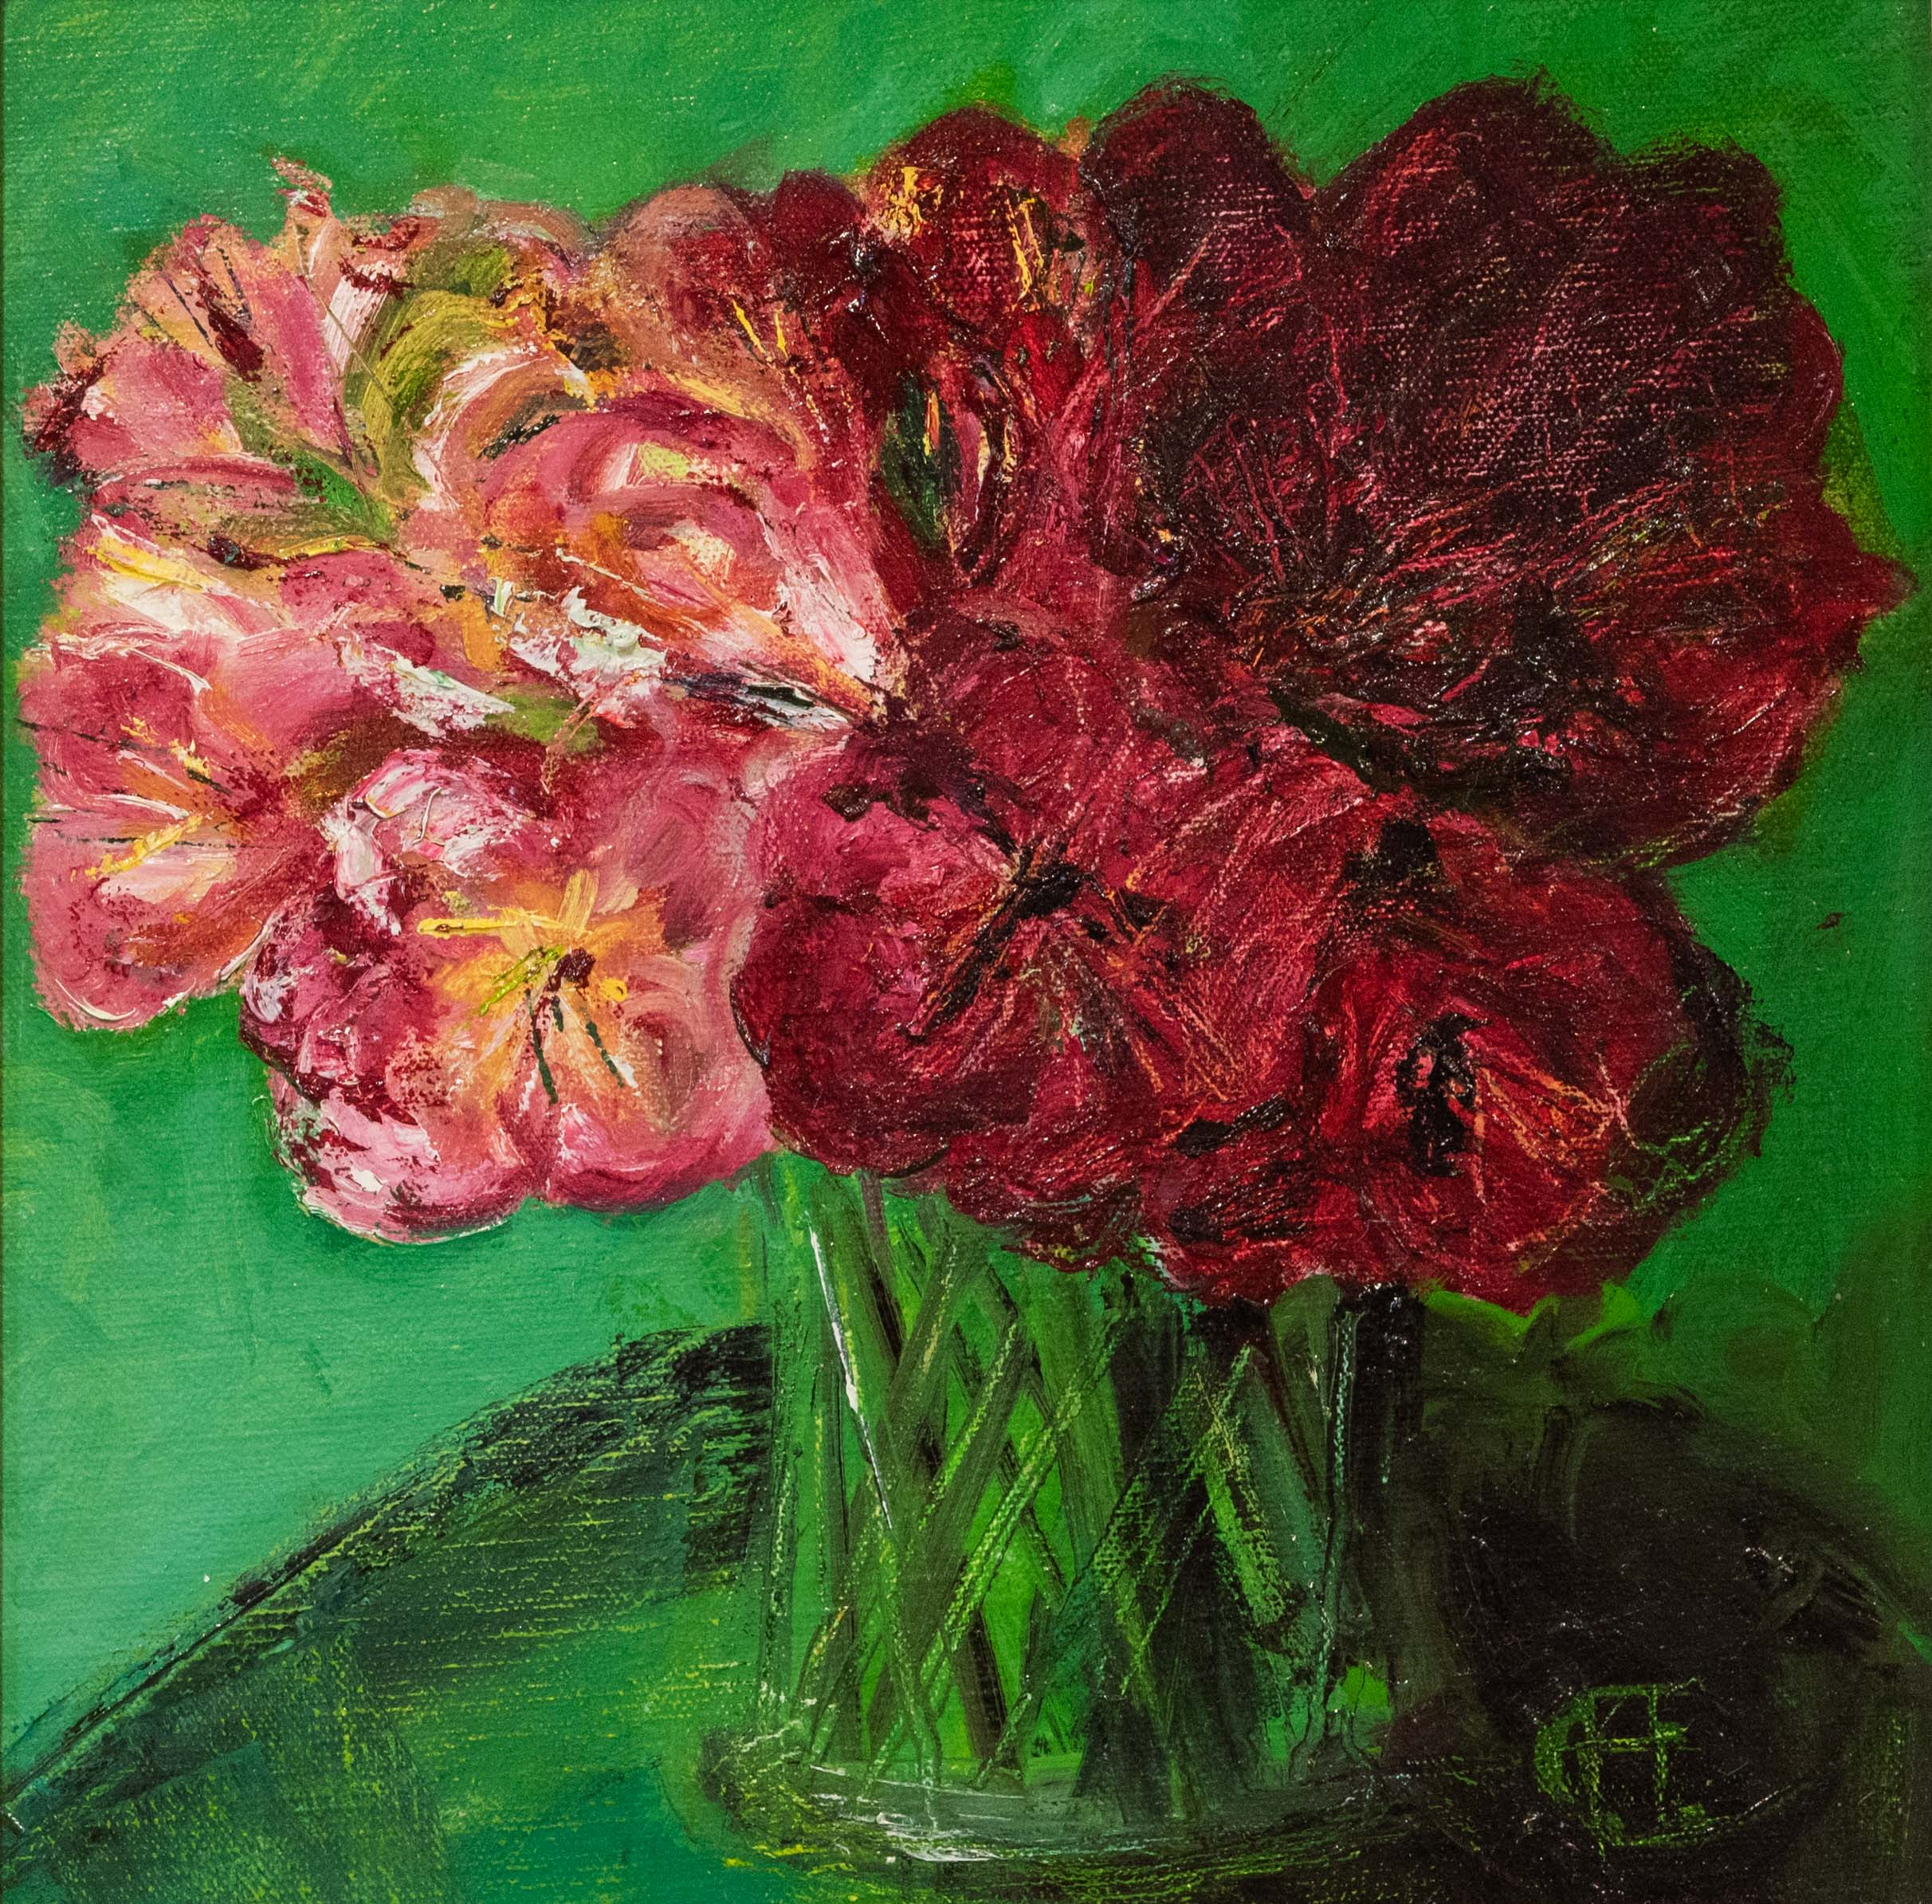 Alstroemeria Red on Green is an original oil painting by Henrietta Caledon. The vibrant background pushes the flowers to the forefront of the piece while the golden frame draws the viewer in.